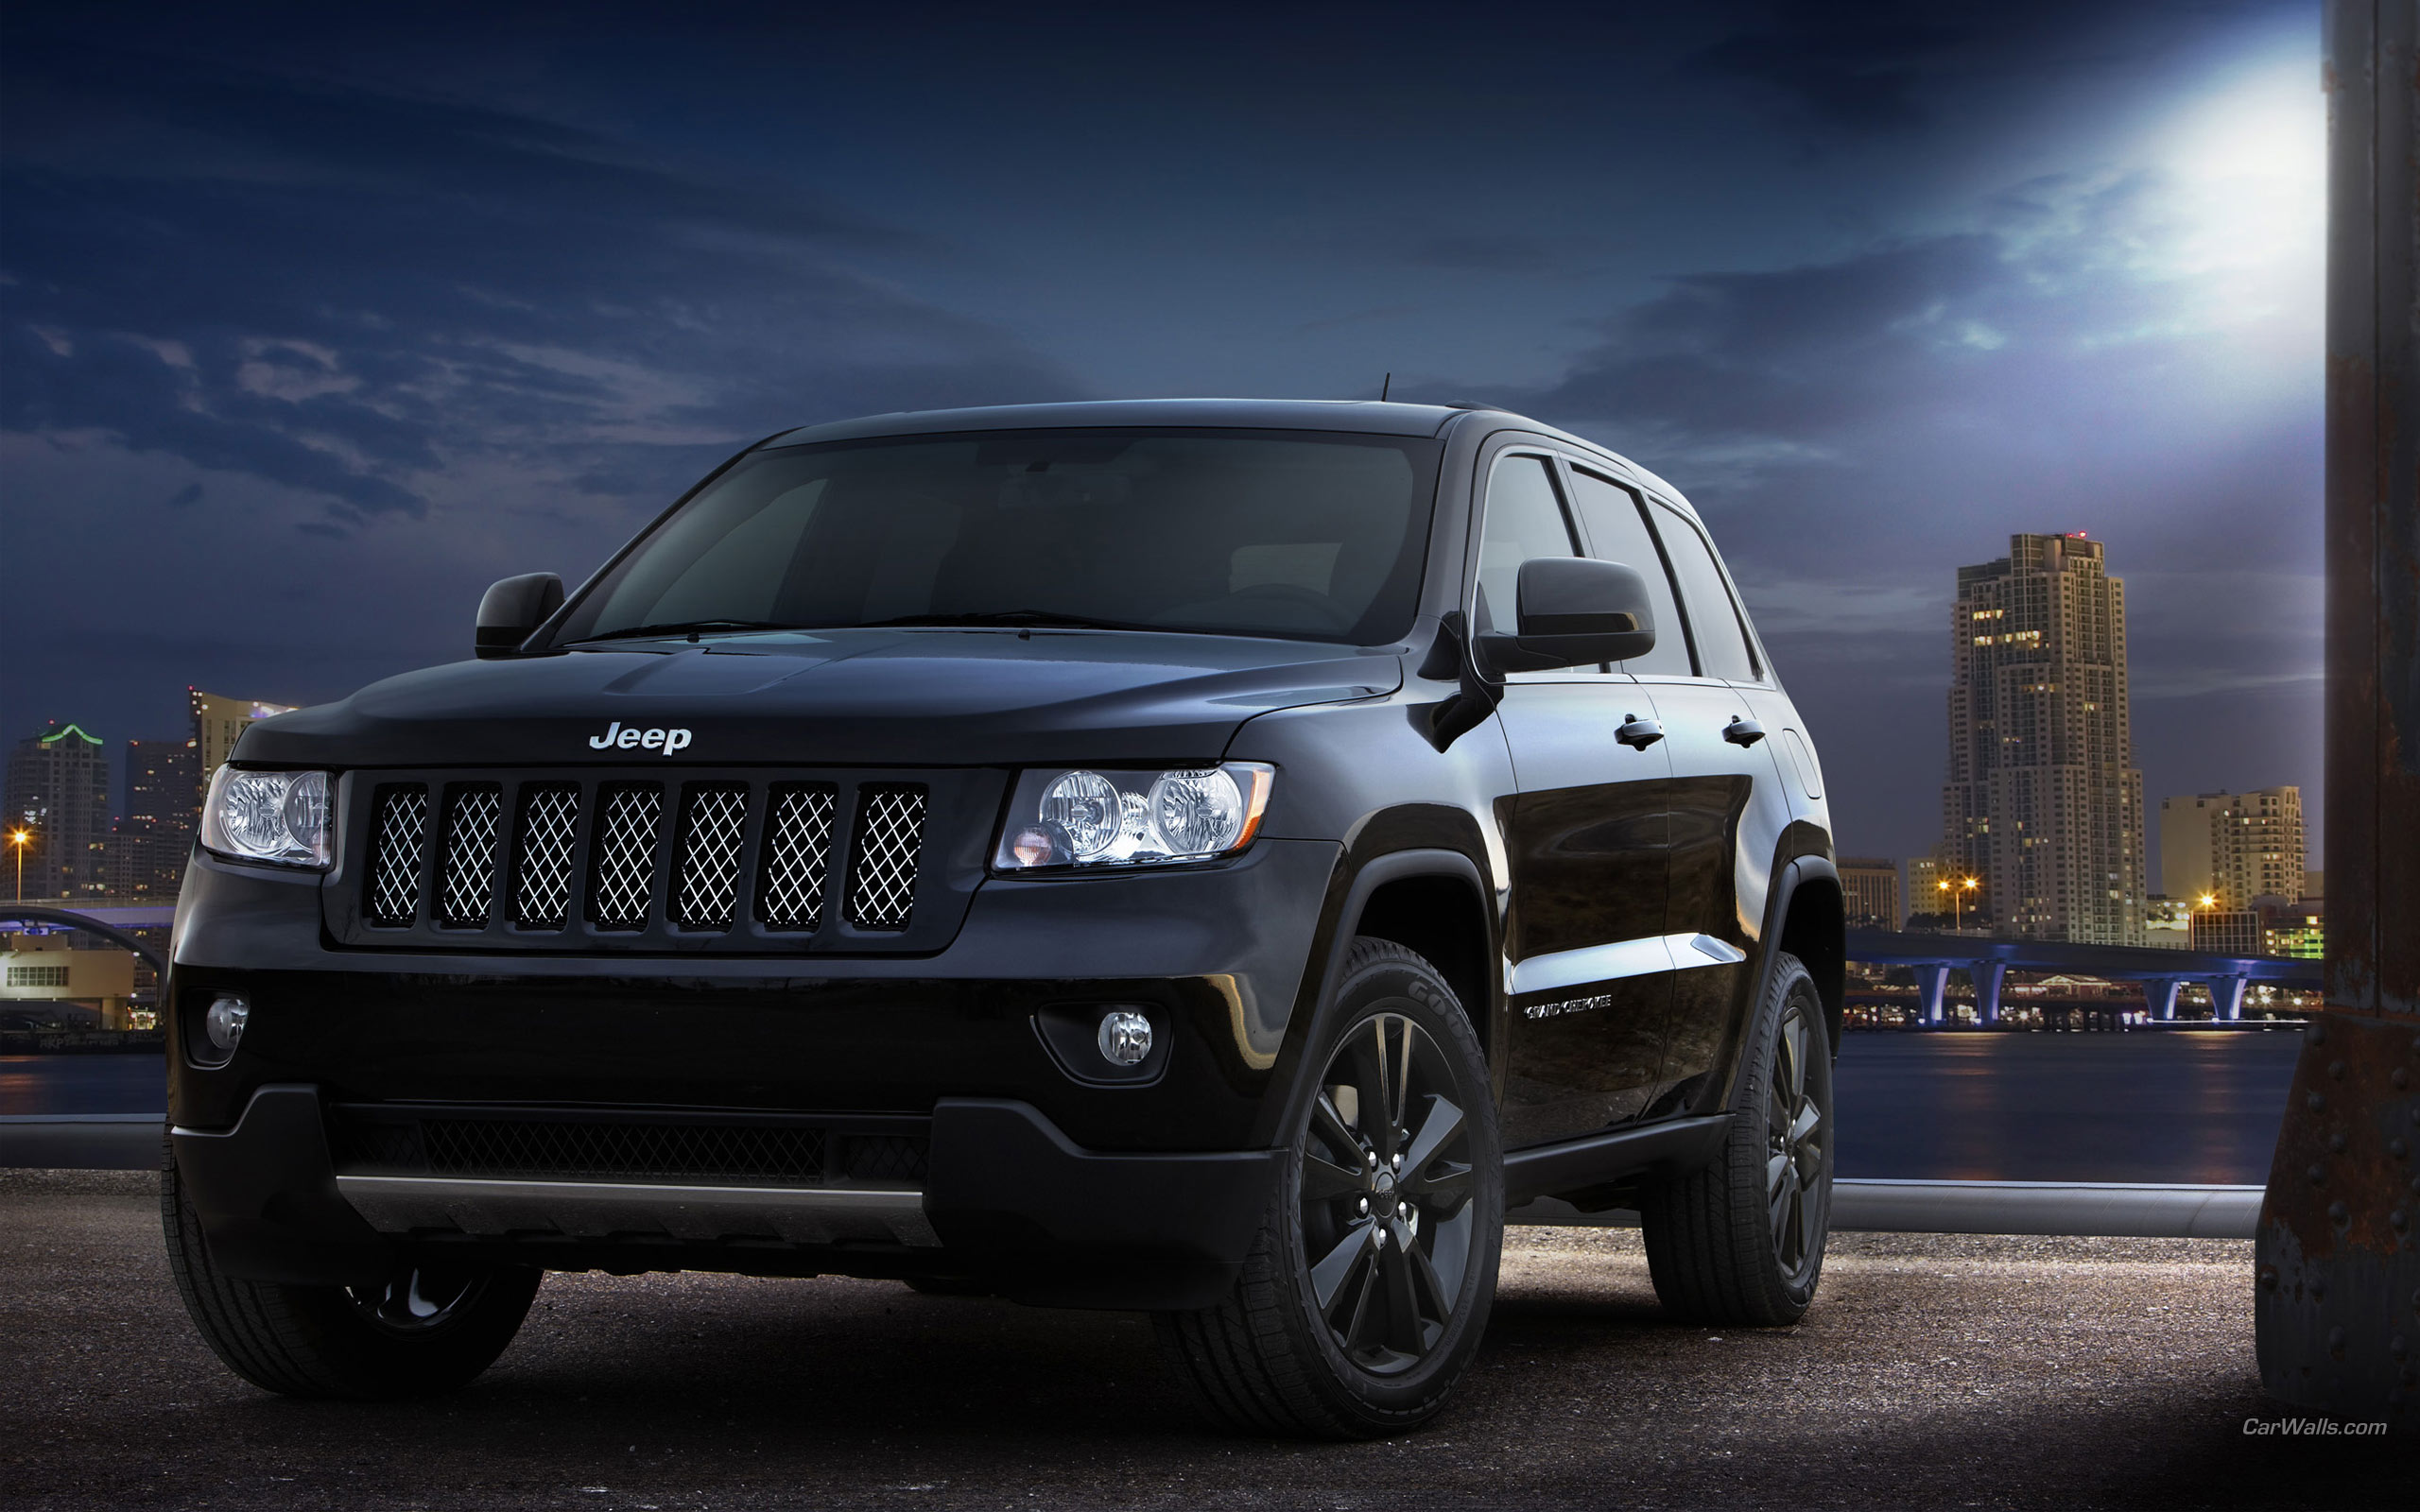 Pictures Jeep Cherokee Cars 2560x1600 Auto Automobile